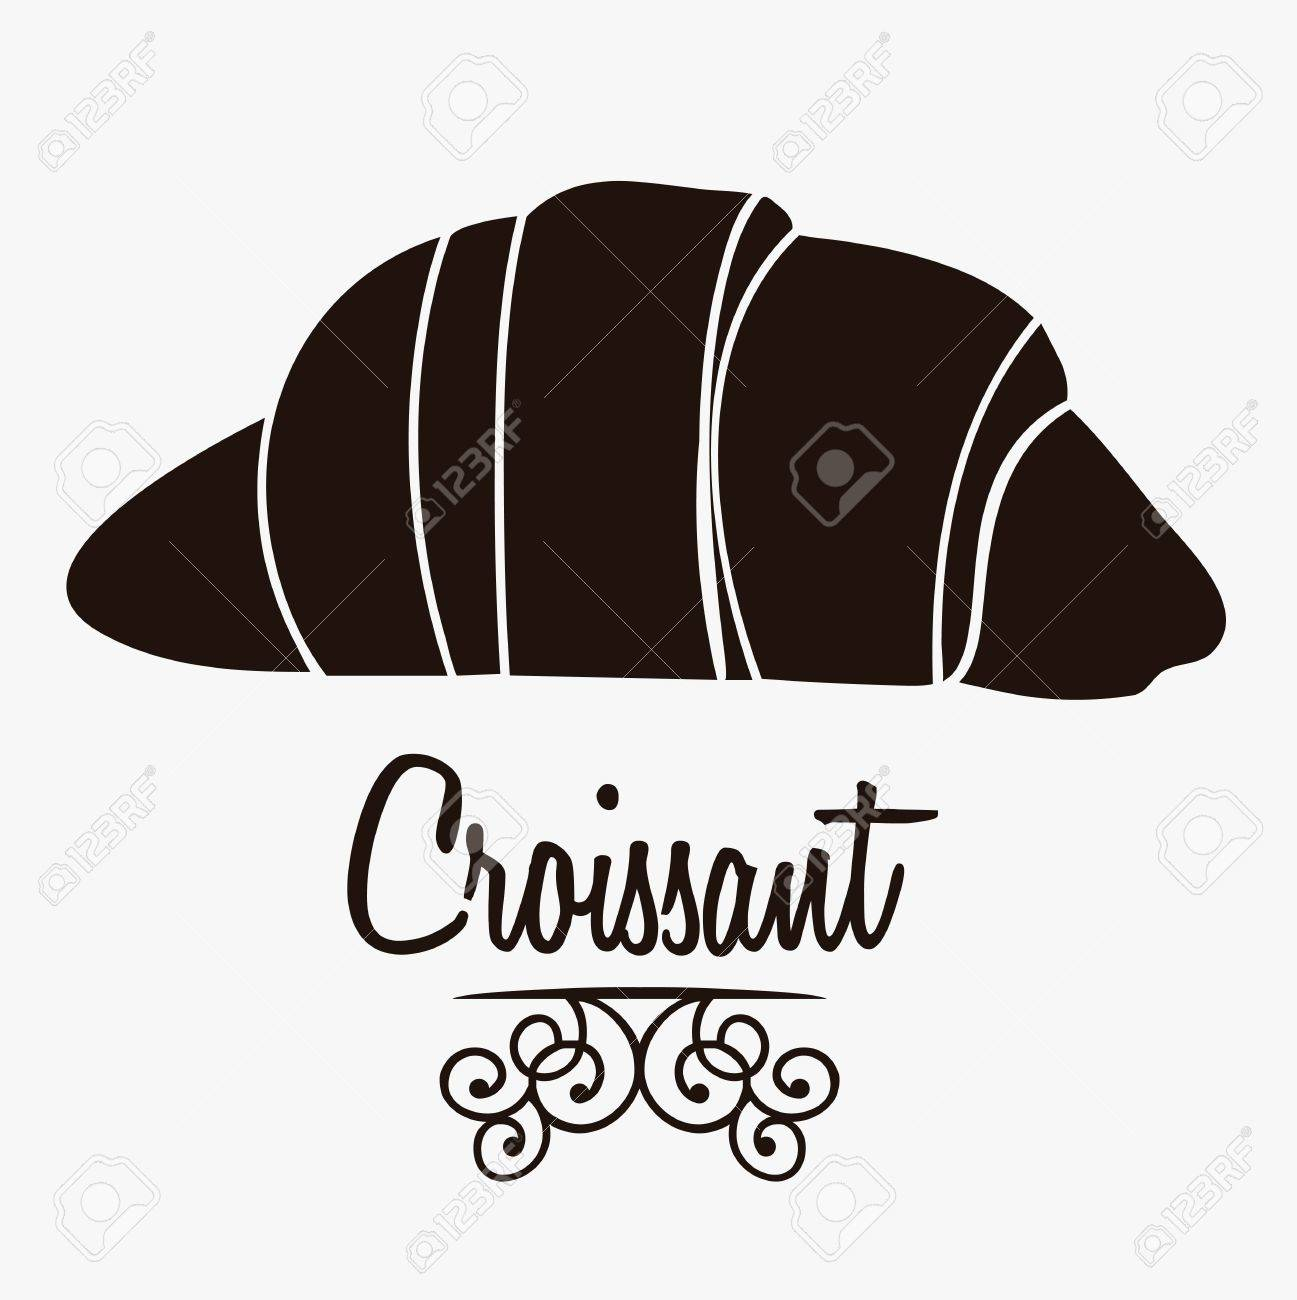 Illustration of croissant and food, bakery icon, vector illustration Stock Vector - 17001781